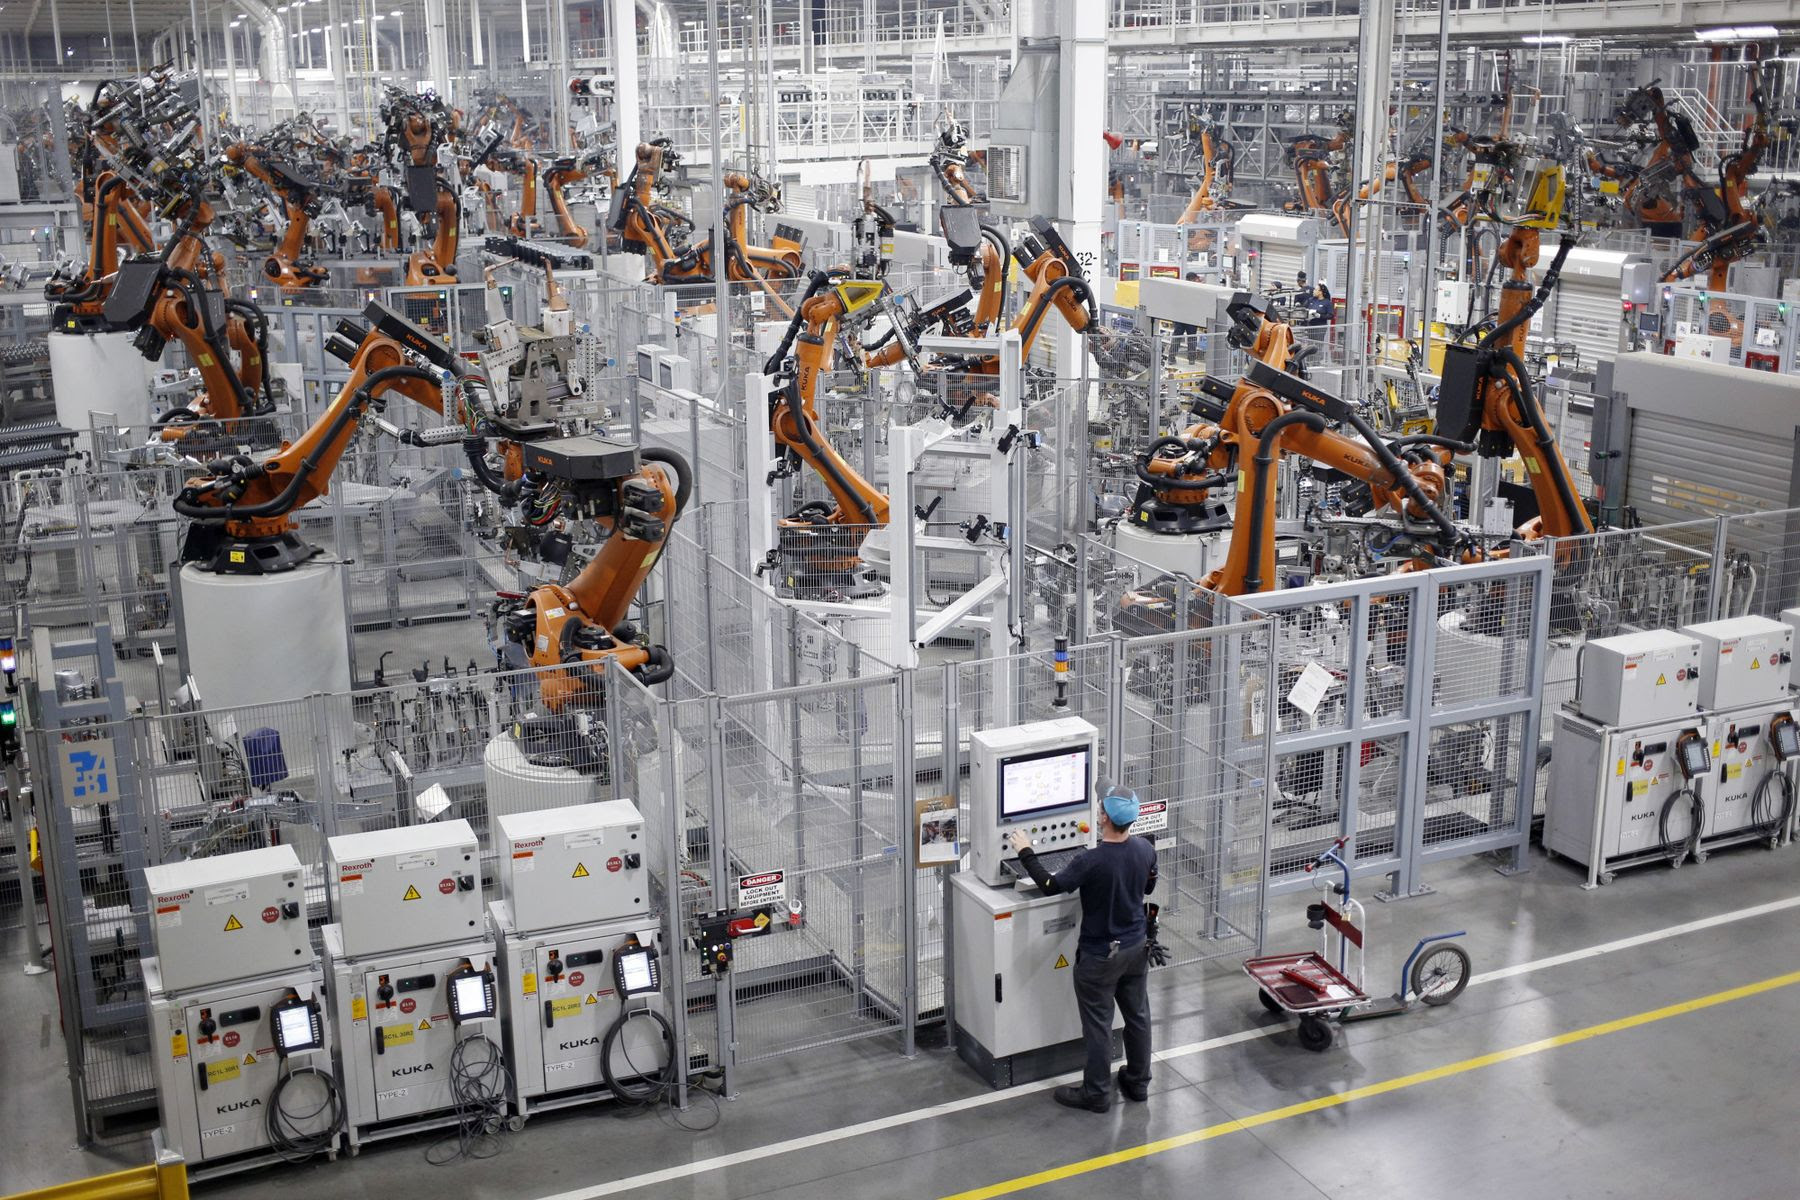 Robots weld car body components for vehicles at an assembly plant in Greer, South Carolina.